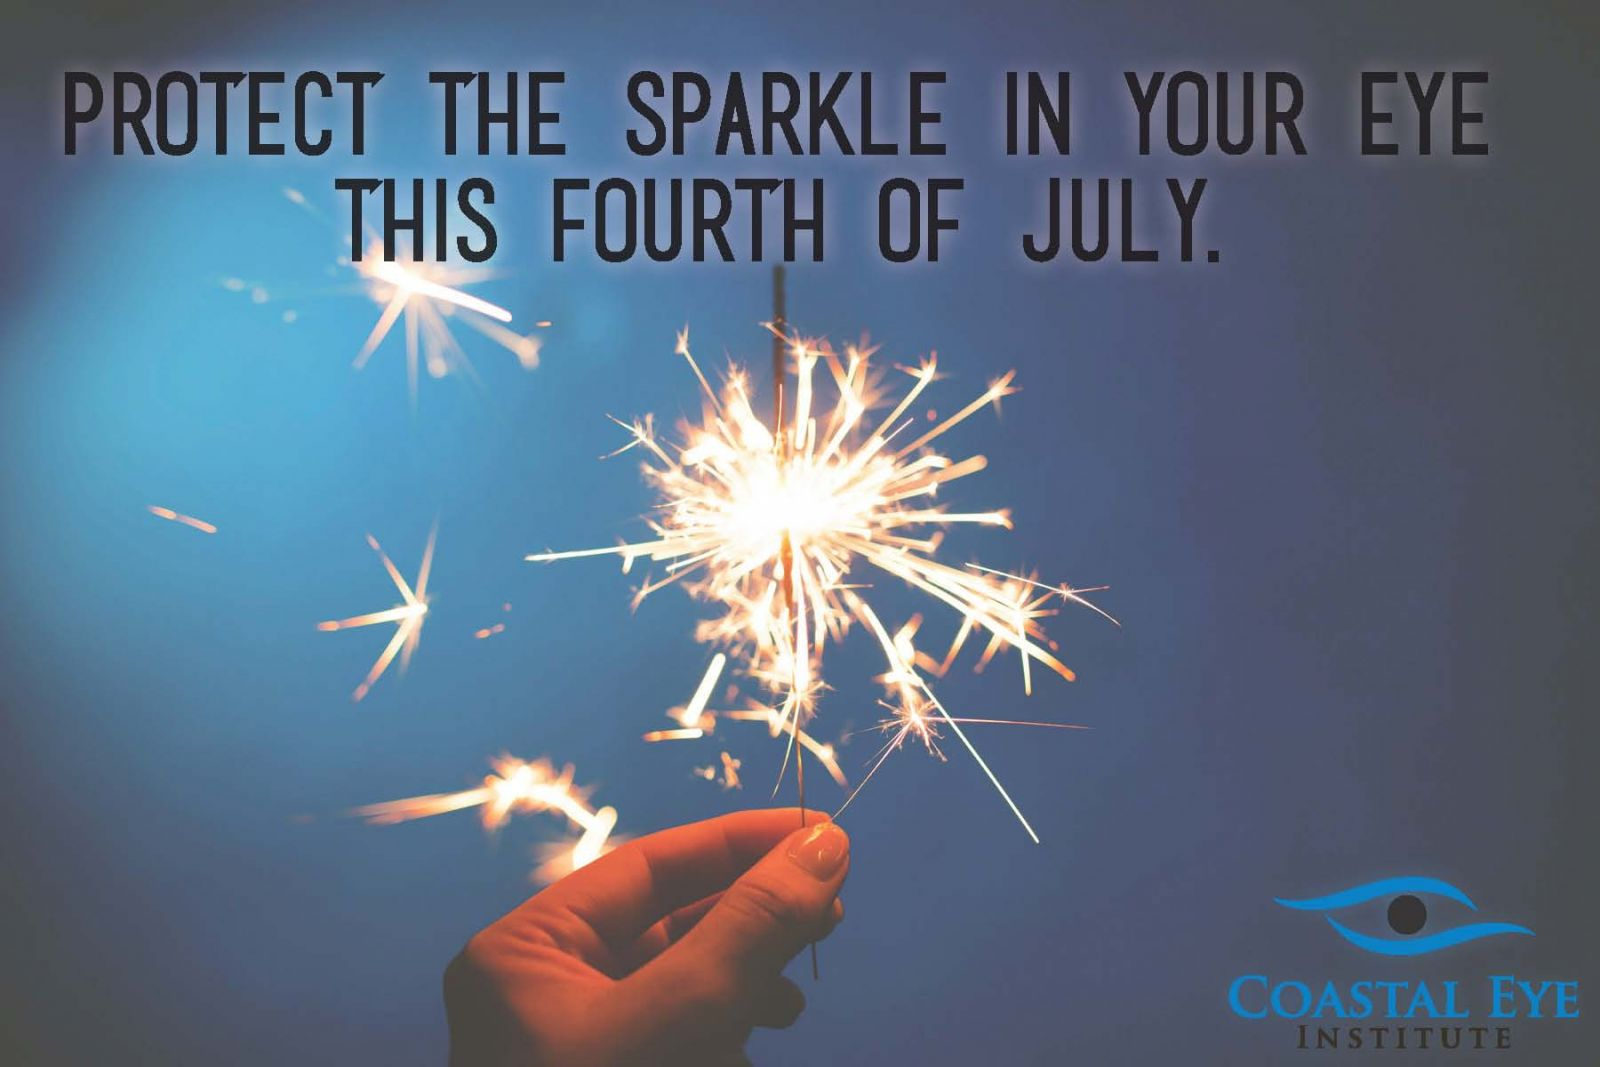 Fireworks eye safety image